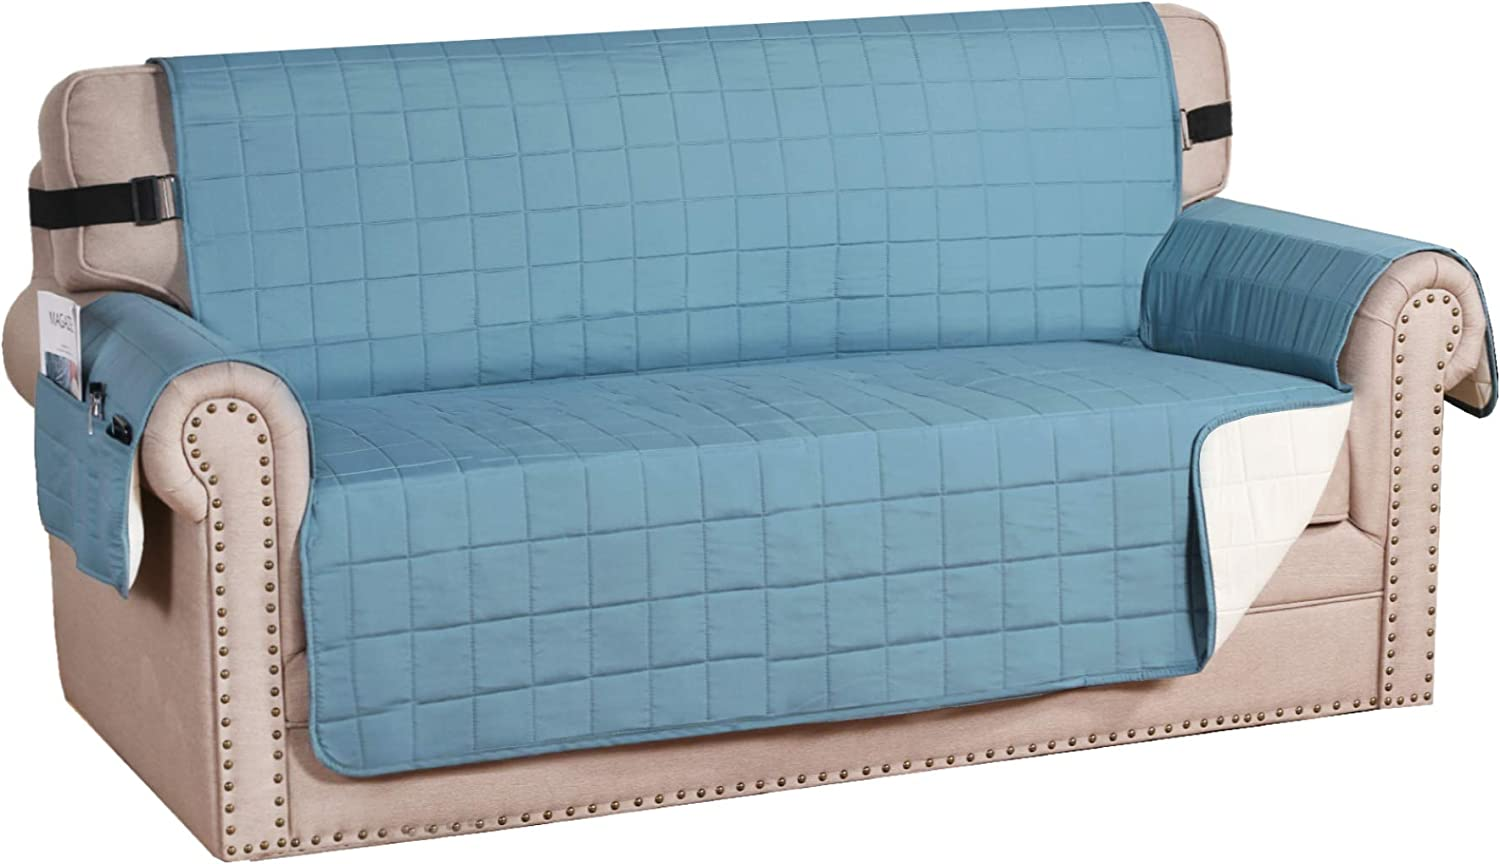 "H.VERSAILTEX Reversible Foam Quilted Non-Slip Furniture Protector with Side Pockets, 2"" Straps Covers for Dogs, Water-Repellent Sofa Slipcover, Seat Width Up to 54"", (Loveseat: Smoke Blue/Beige)"